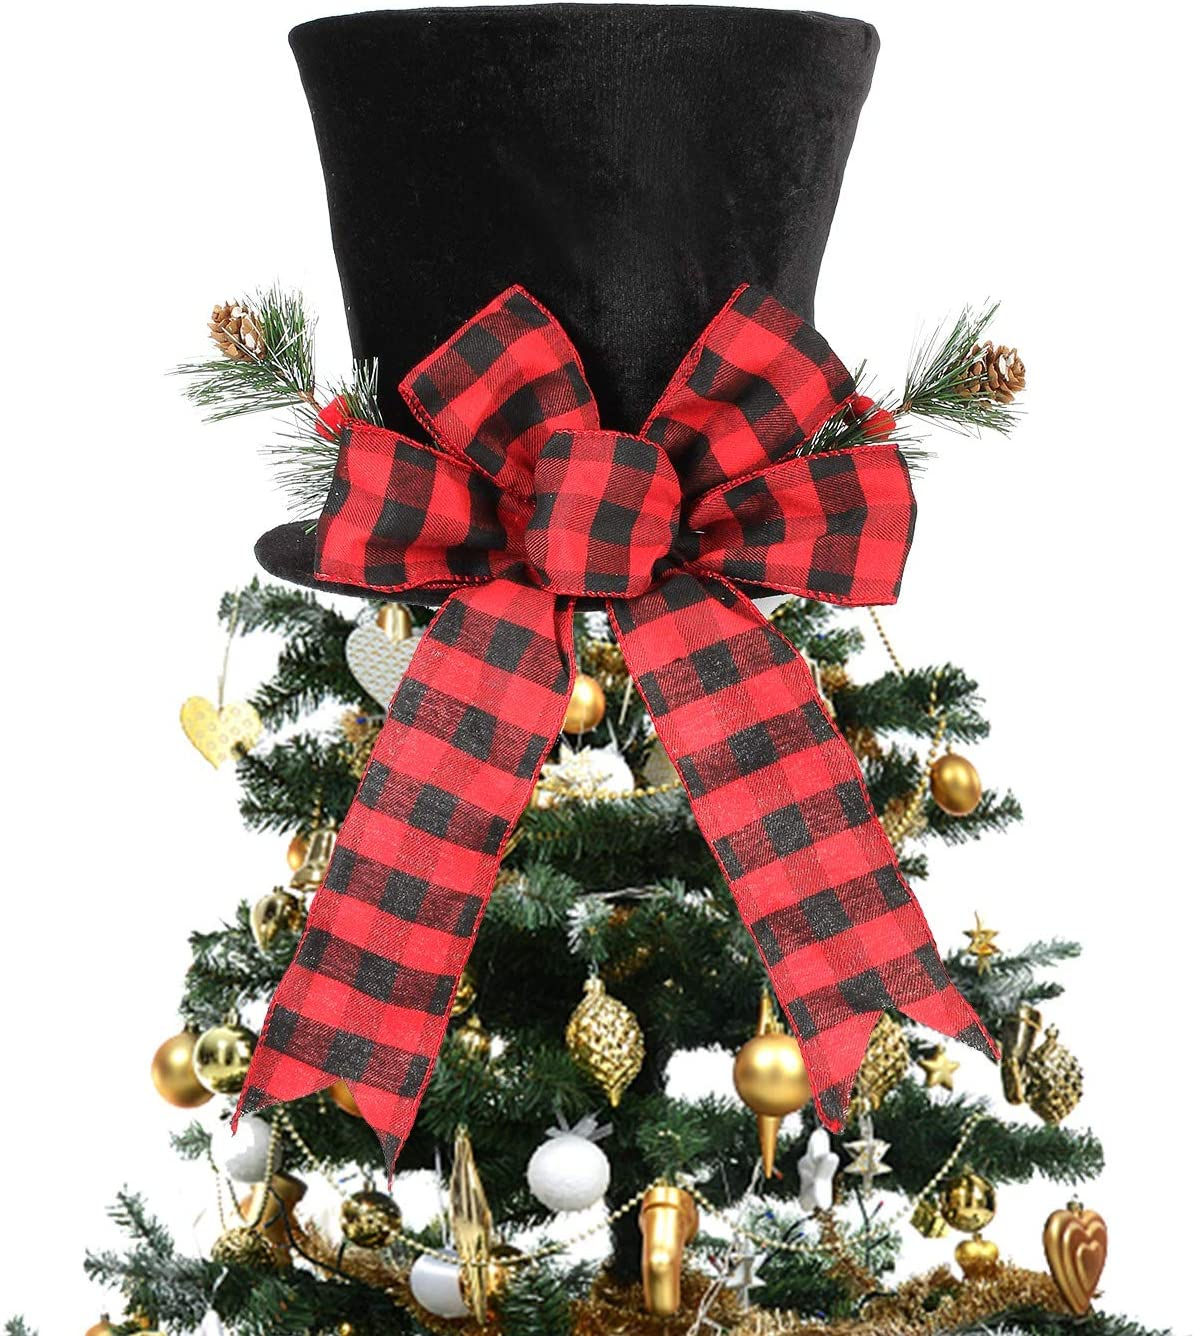 HMASYO Christmas Tree Topper Hat - Christmas Black Velvet Bowler Derby Hat Large Red Plaid Bow with Pine Cones Holly Berries Christmas Tree Decorations Desktop Ornaments for Holiday Home Decor